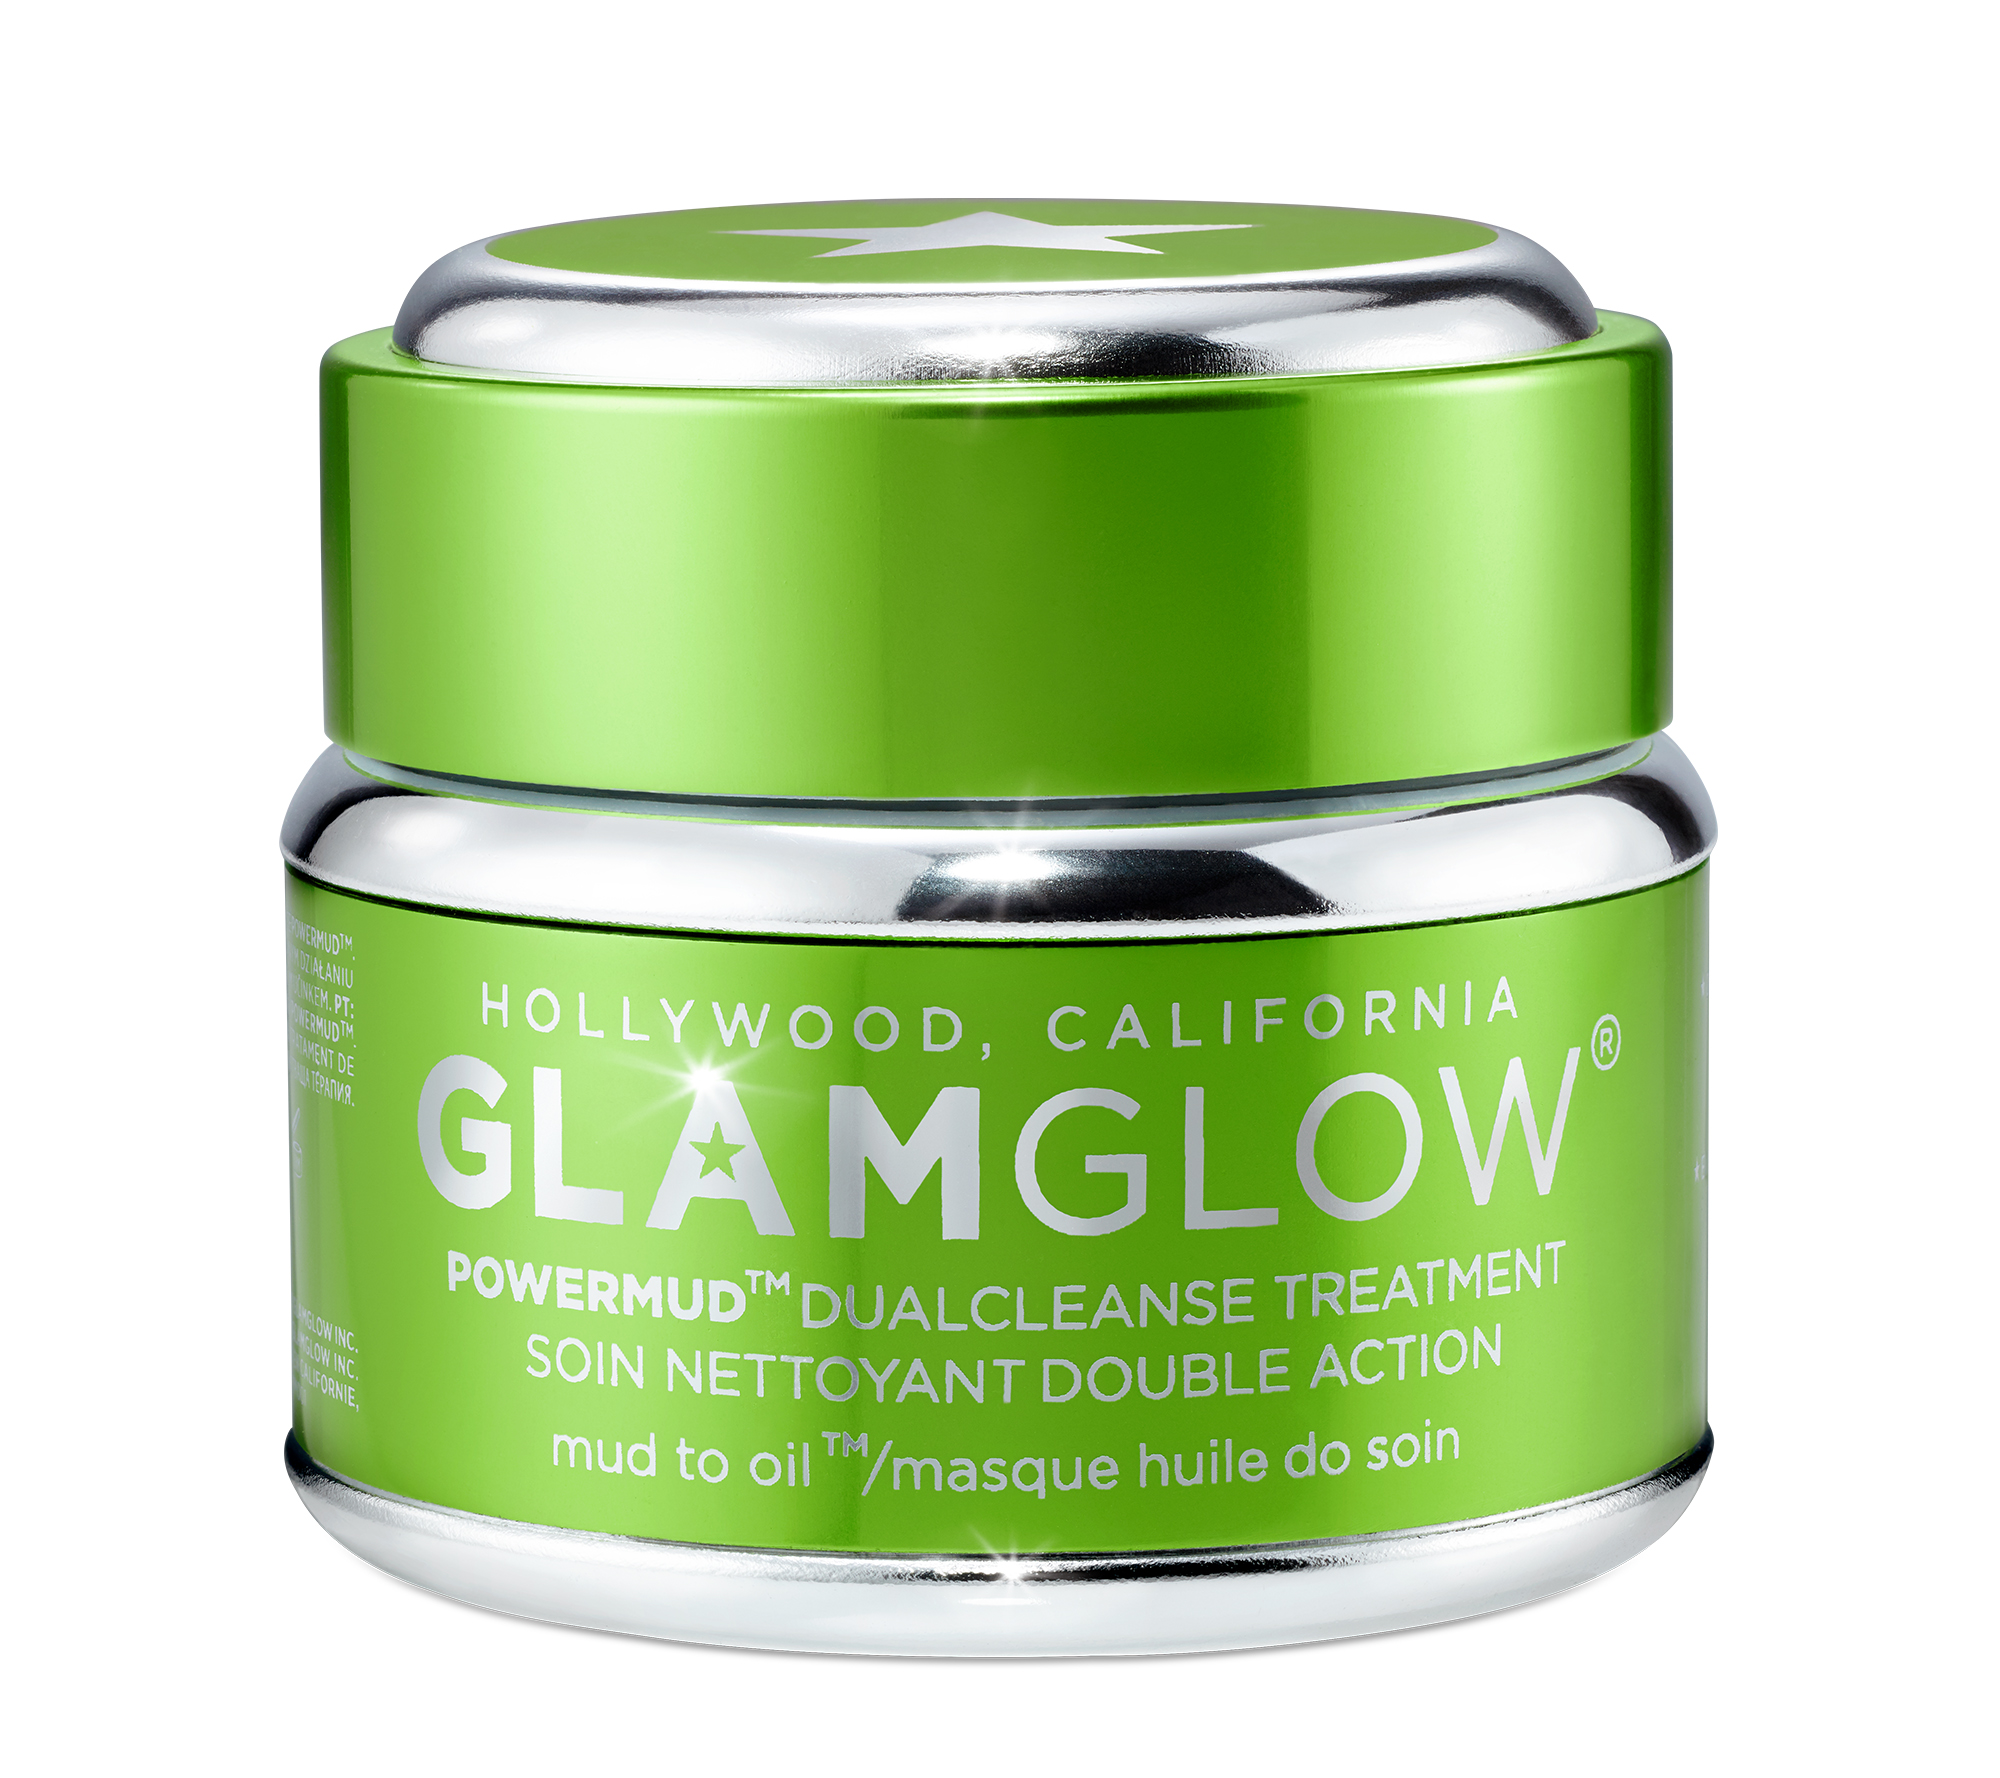 Powermud Dualcleanse Treatment